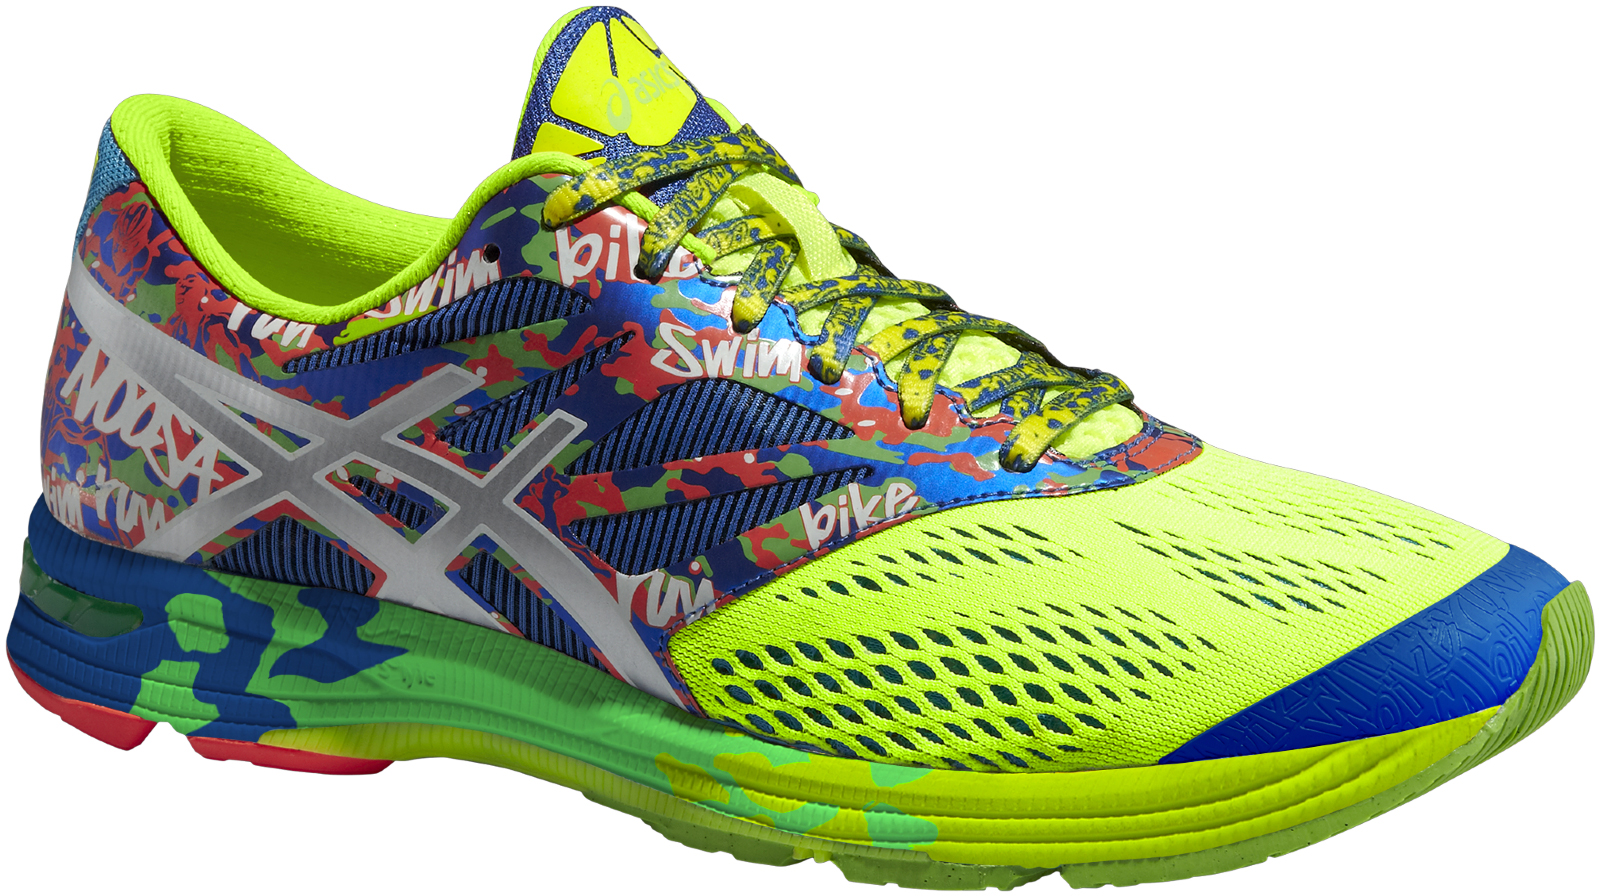 skate shoes c566e342 asics gel noosa tri 25th racing shoes